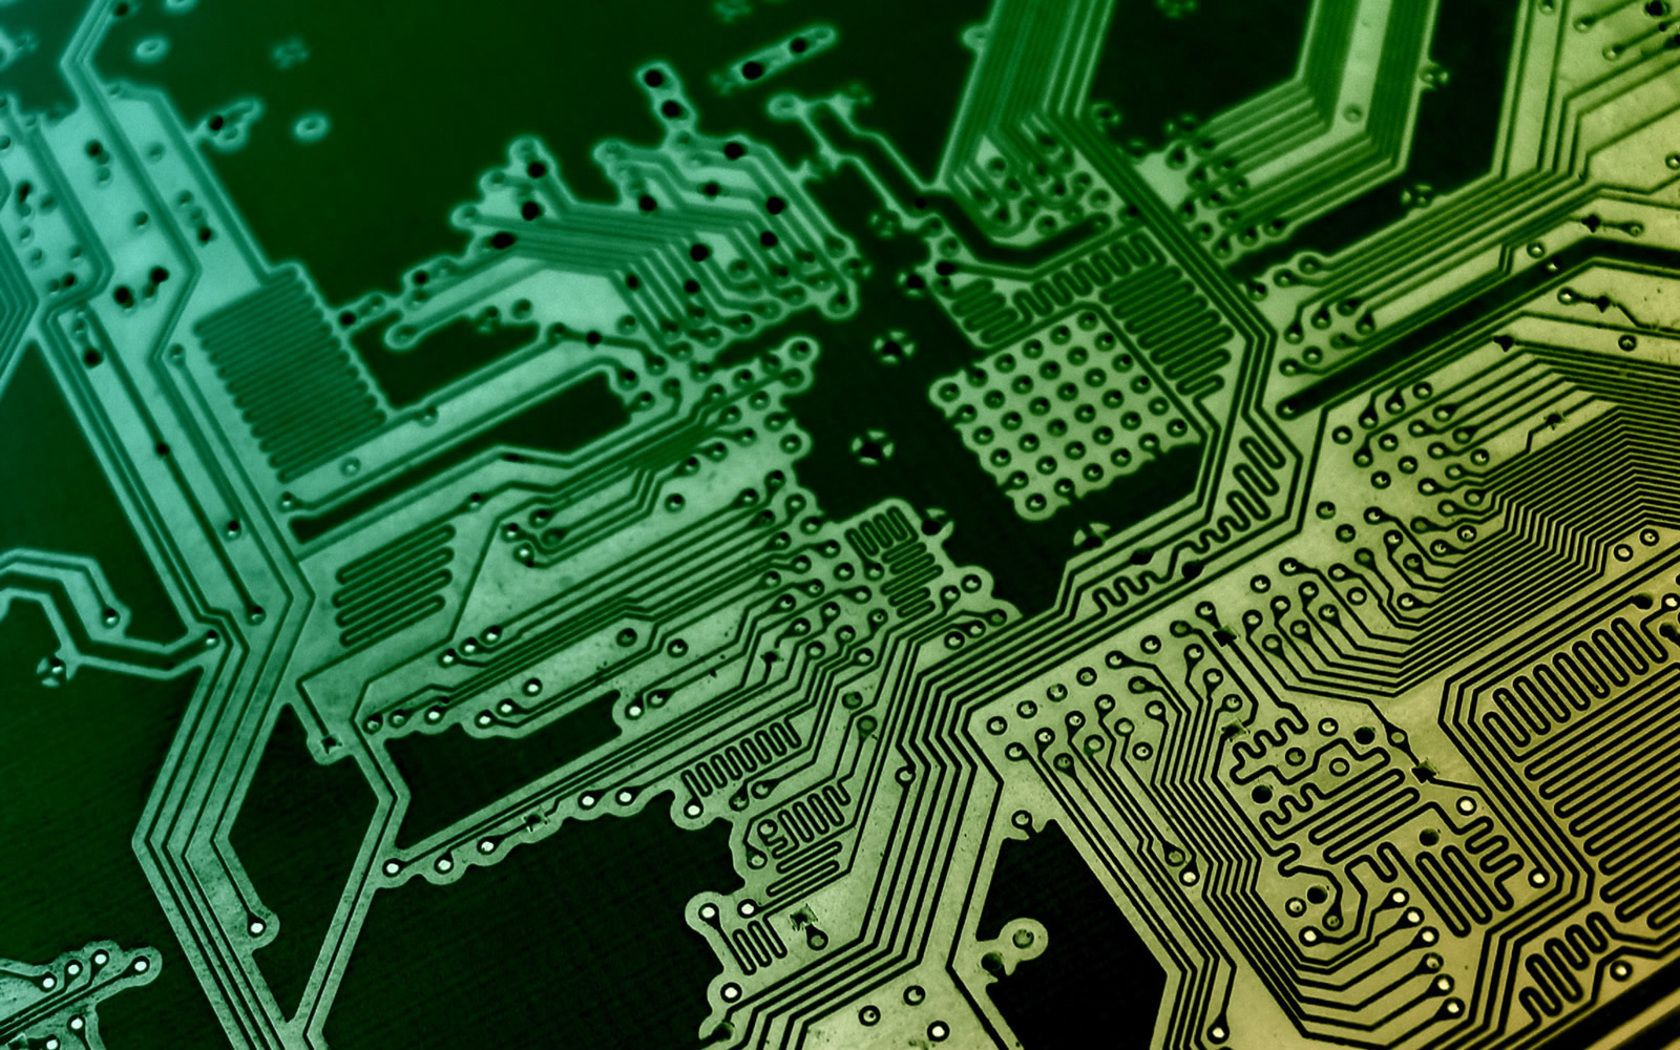 Electric Circuit Wallpaper Electric circuit wallpaper to | graphic ...